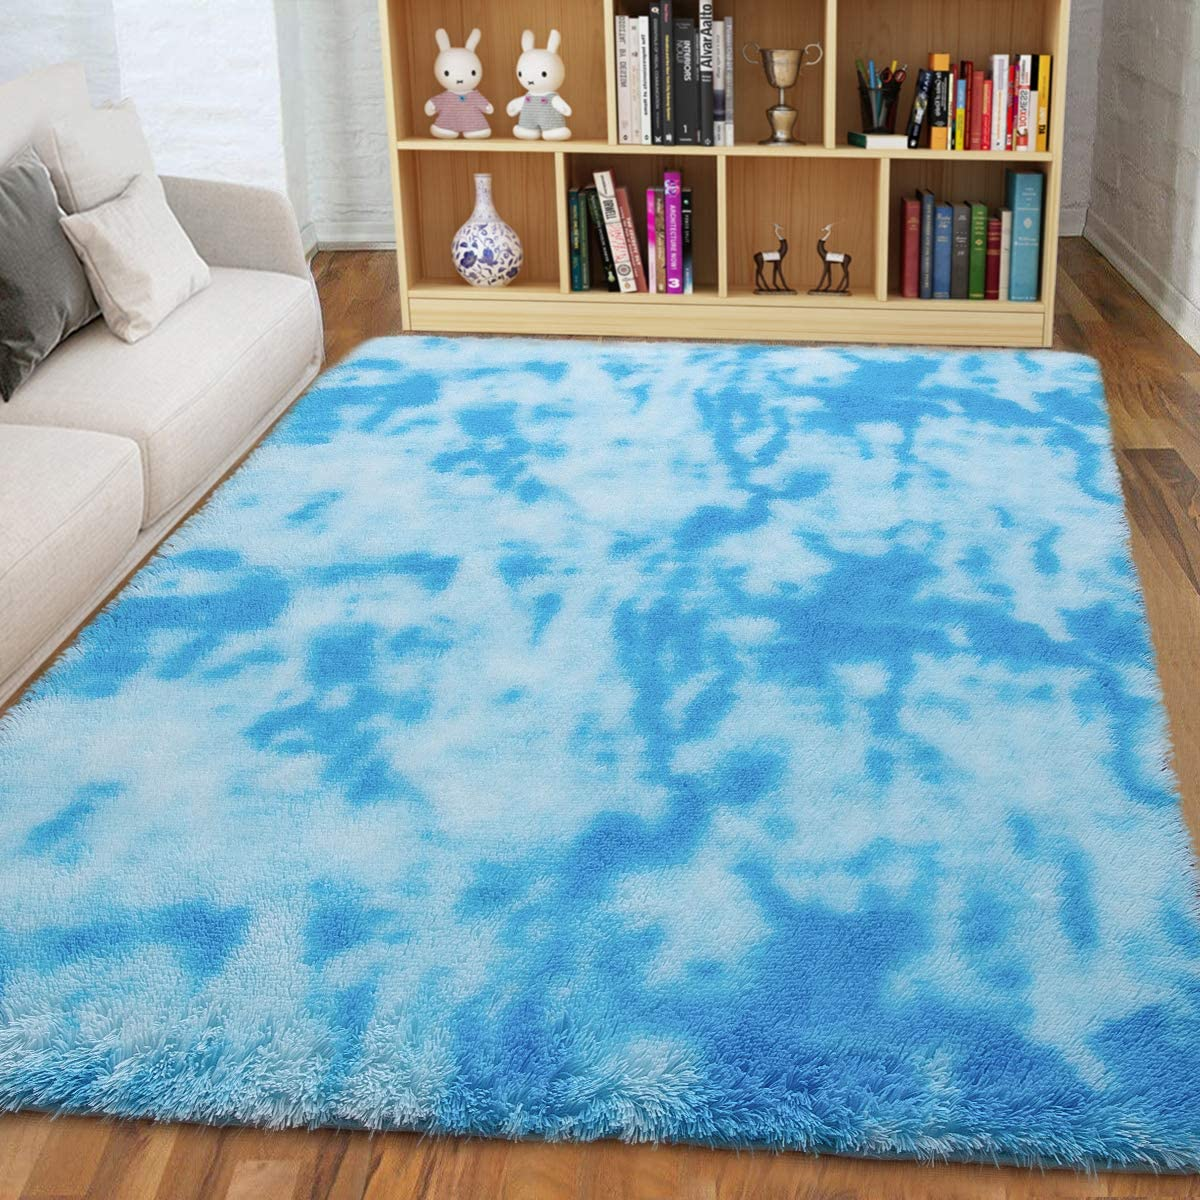 ISEAU Soft Shag Area Rug Modern Indoor Fluffy Rugs, Ultra Comfy Abstract Shaggy Fur Living Room Carpets, Suitable as Bedroom Nursery Rug for Girls and Kids Home Decor, 5ft x 8ft, Blue